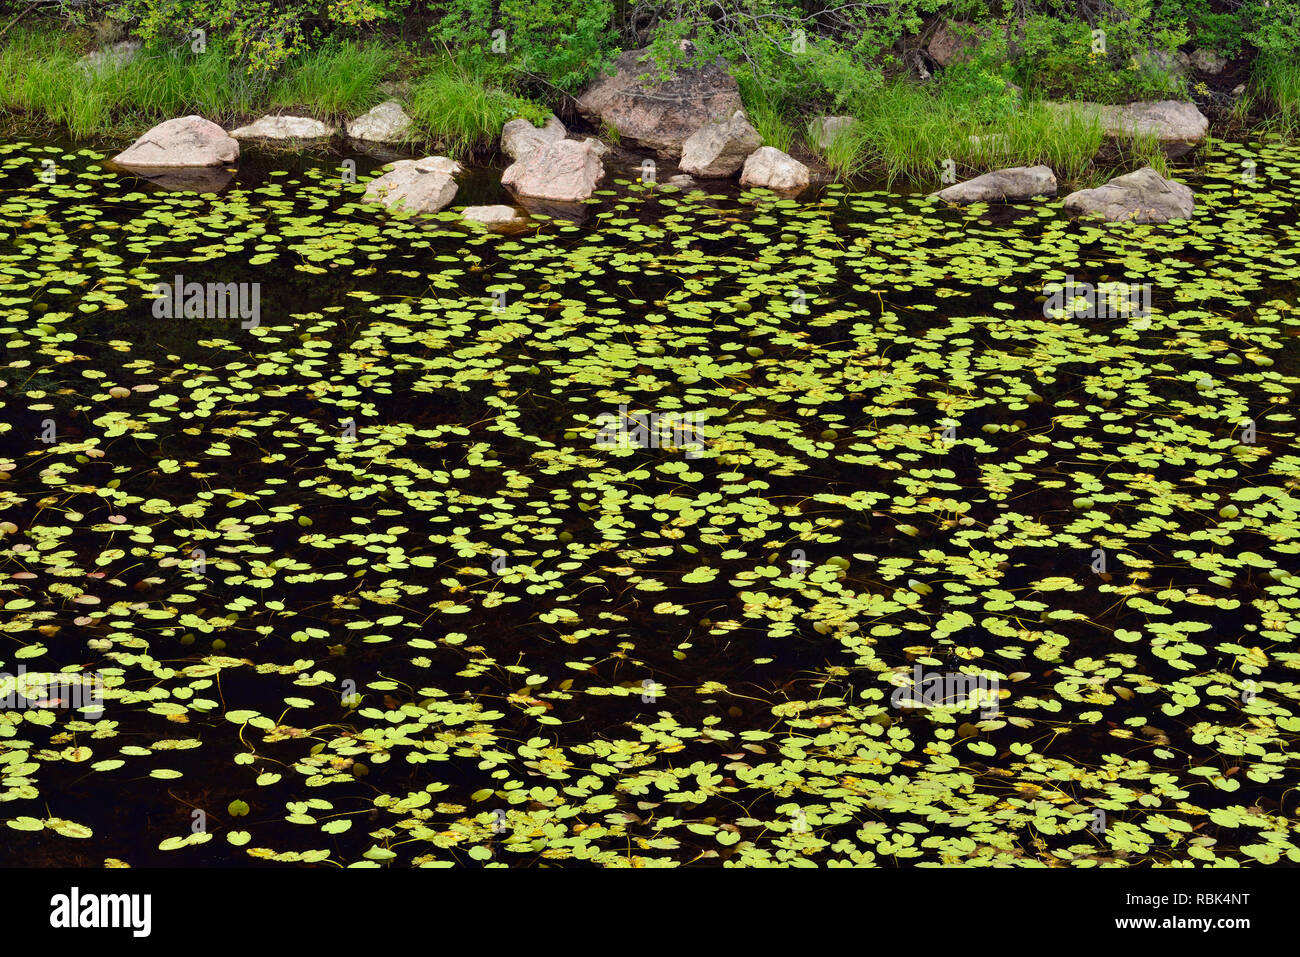 Conifer reflections in a boreal pond with yellow water lilies., Halfway Lake Provincial Park, Ontario, Canada - Stock Image